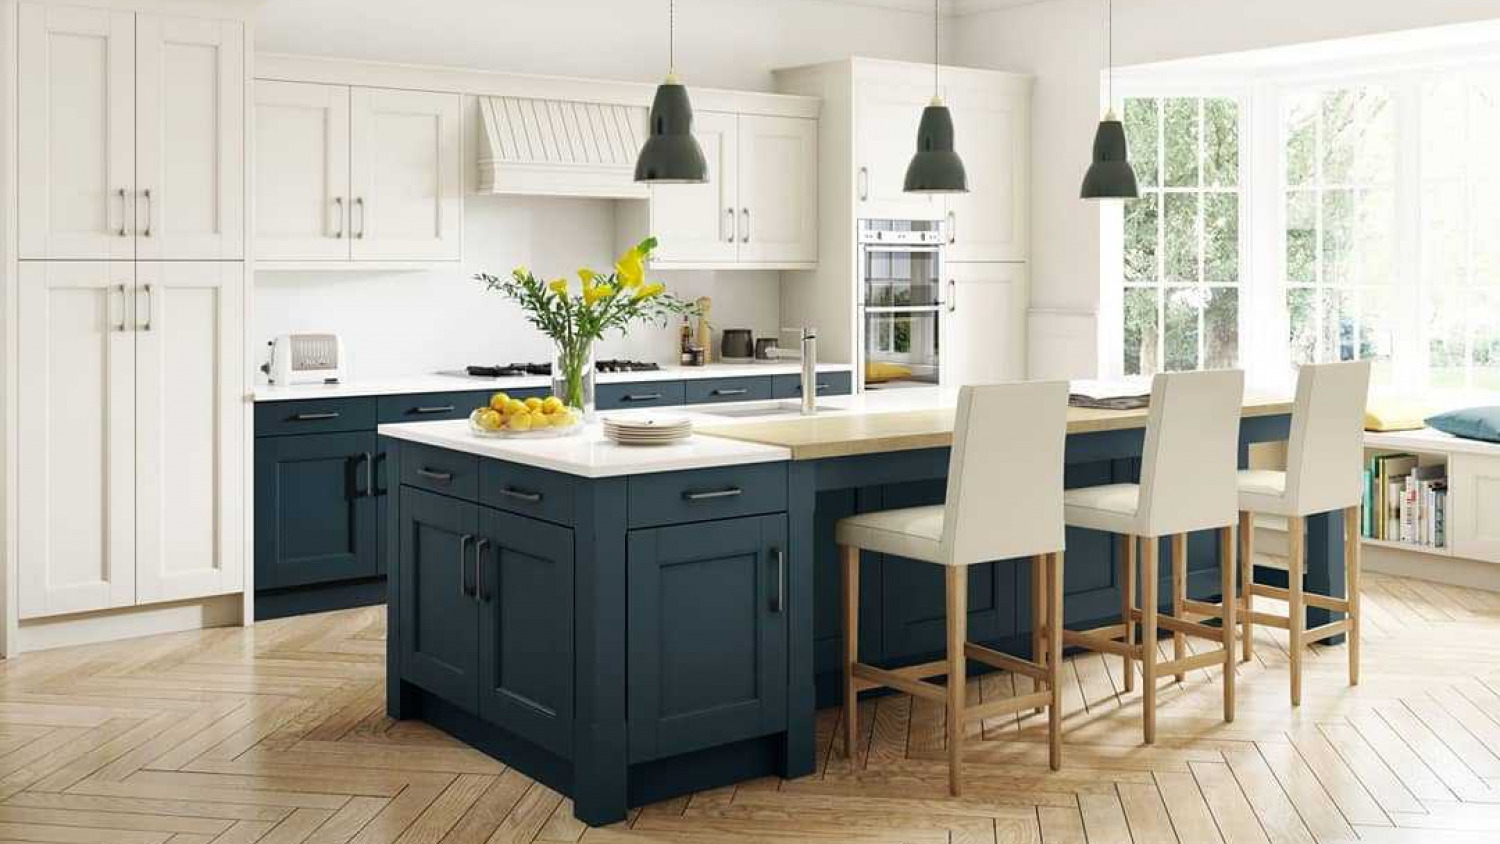 Kitchen Island Ideas Inspiration for your kitchen